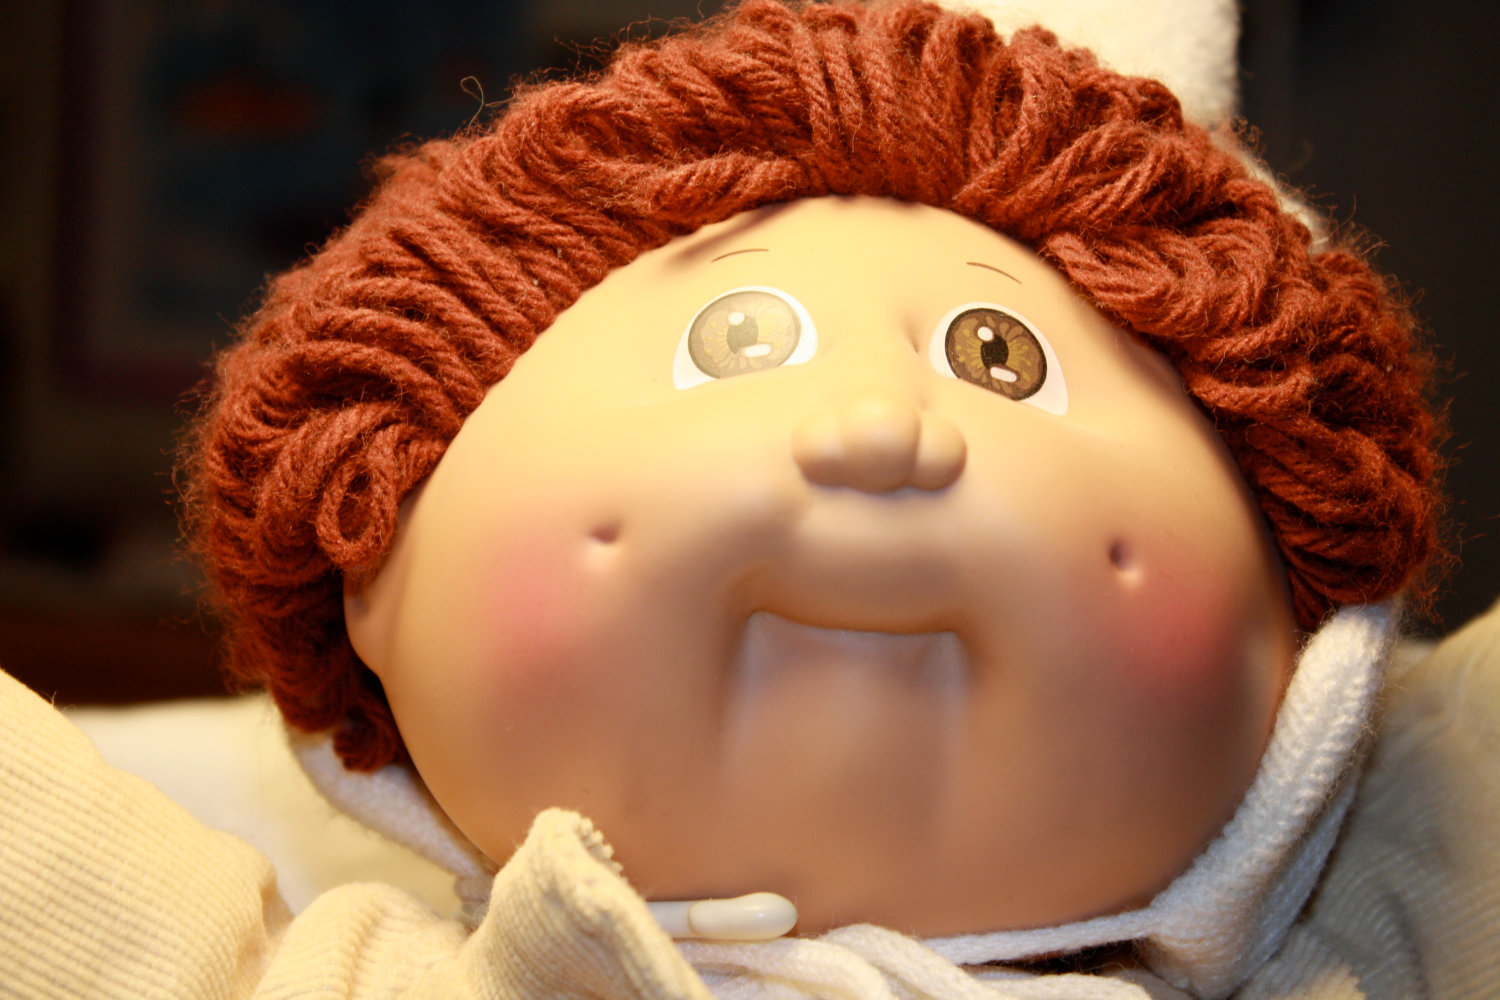 cabbagepatch